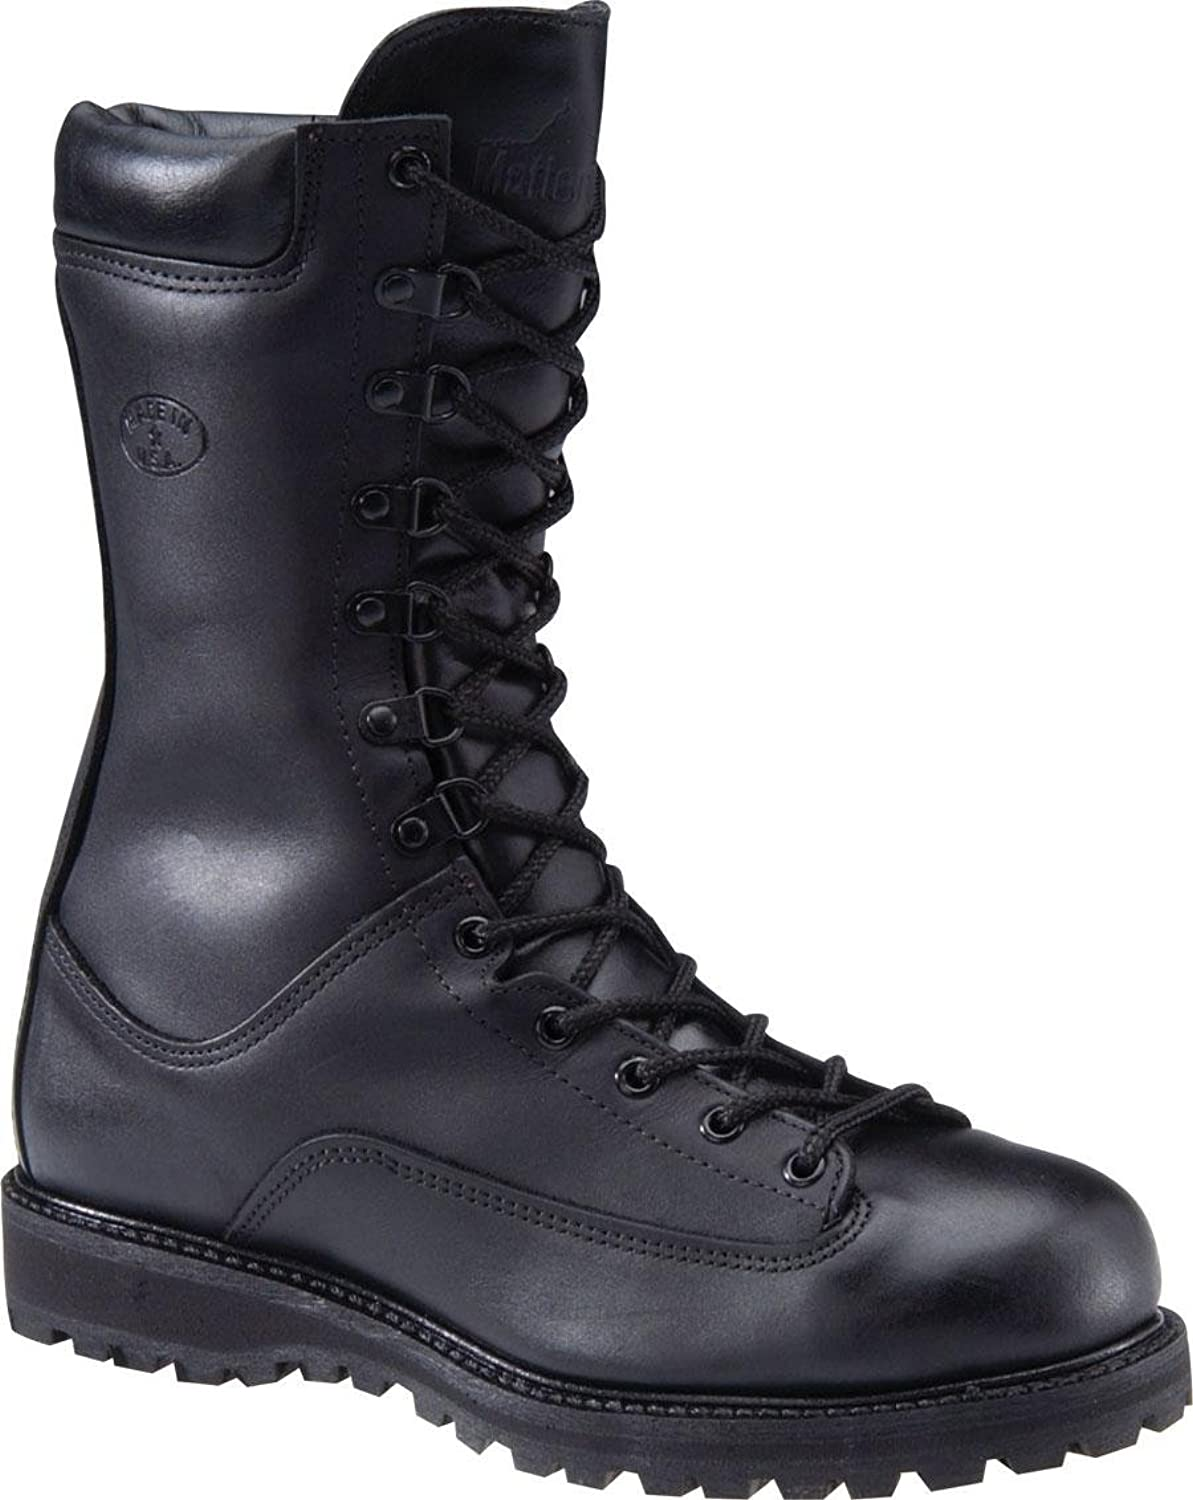 "Corcoran 10"" Waterproof Insulated Field Boot"